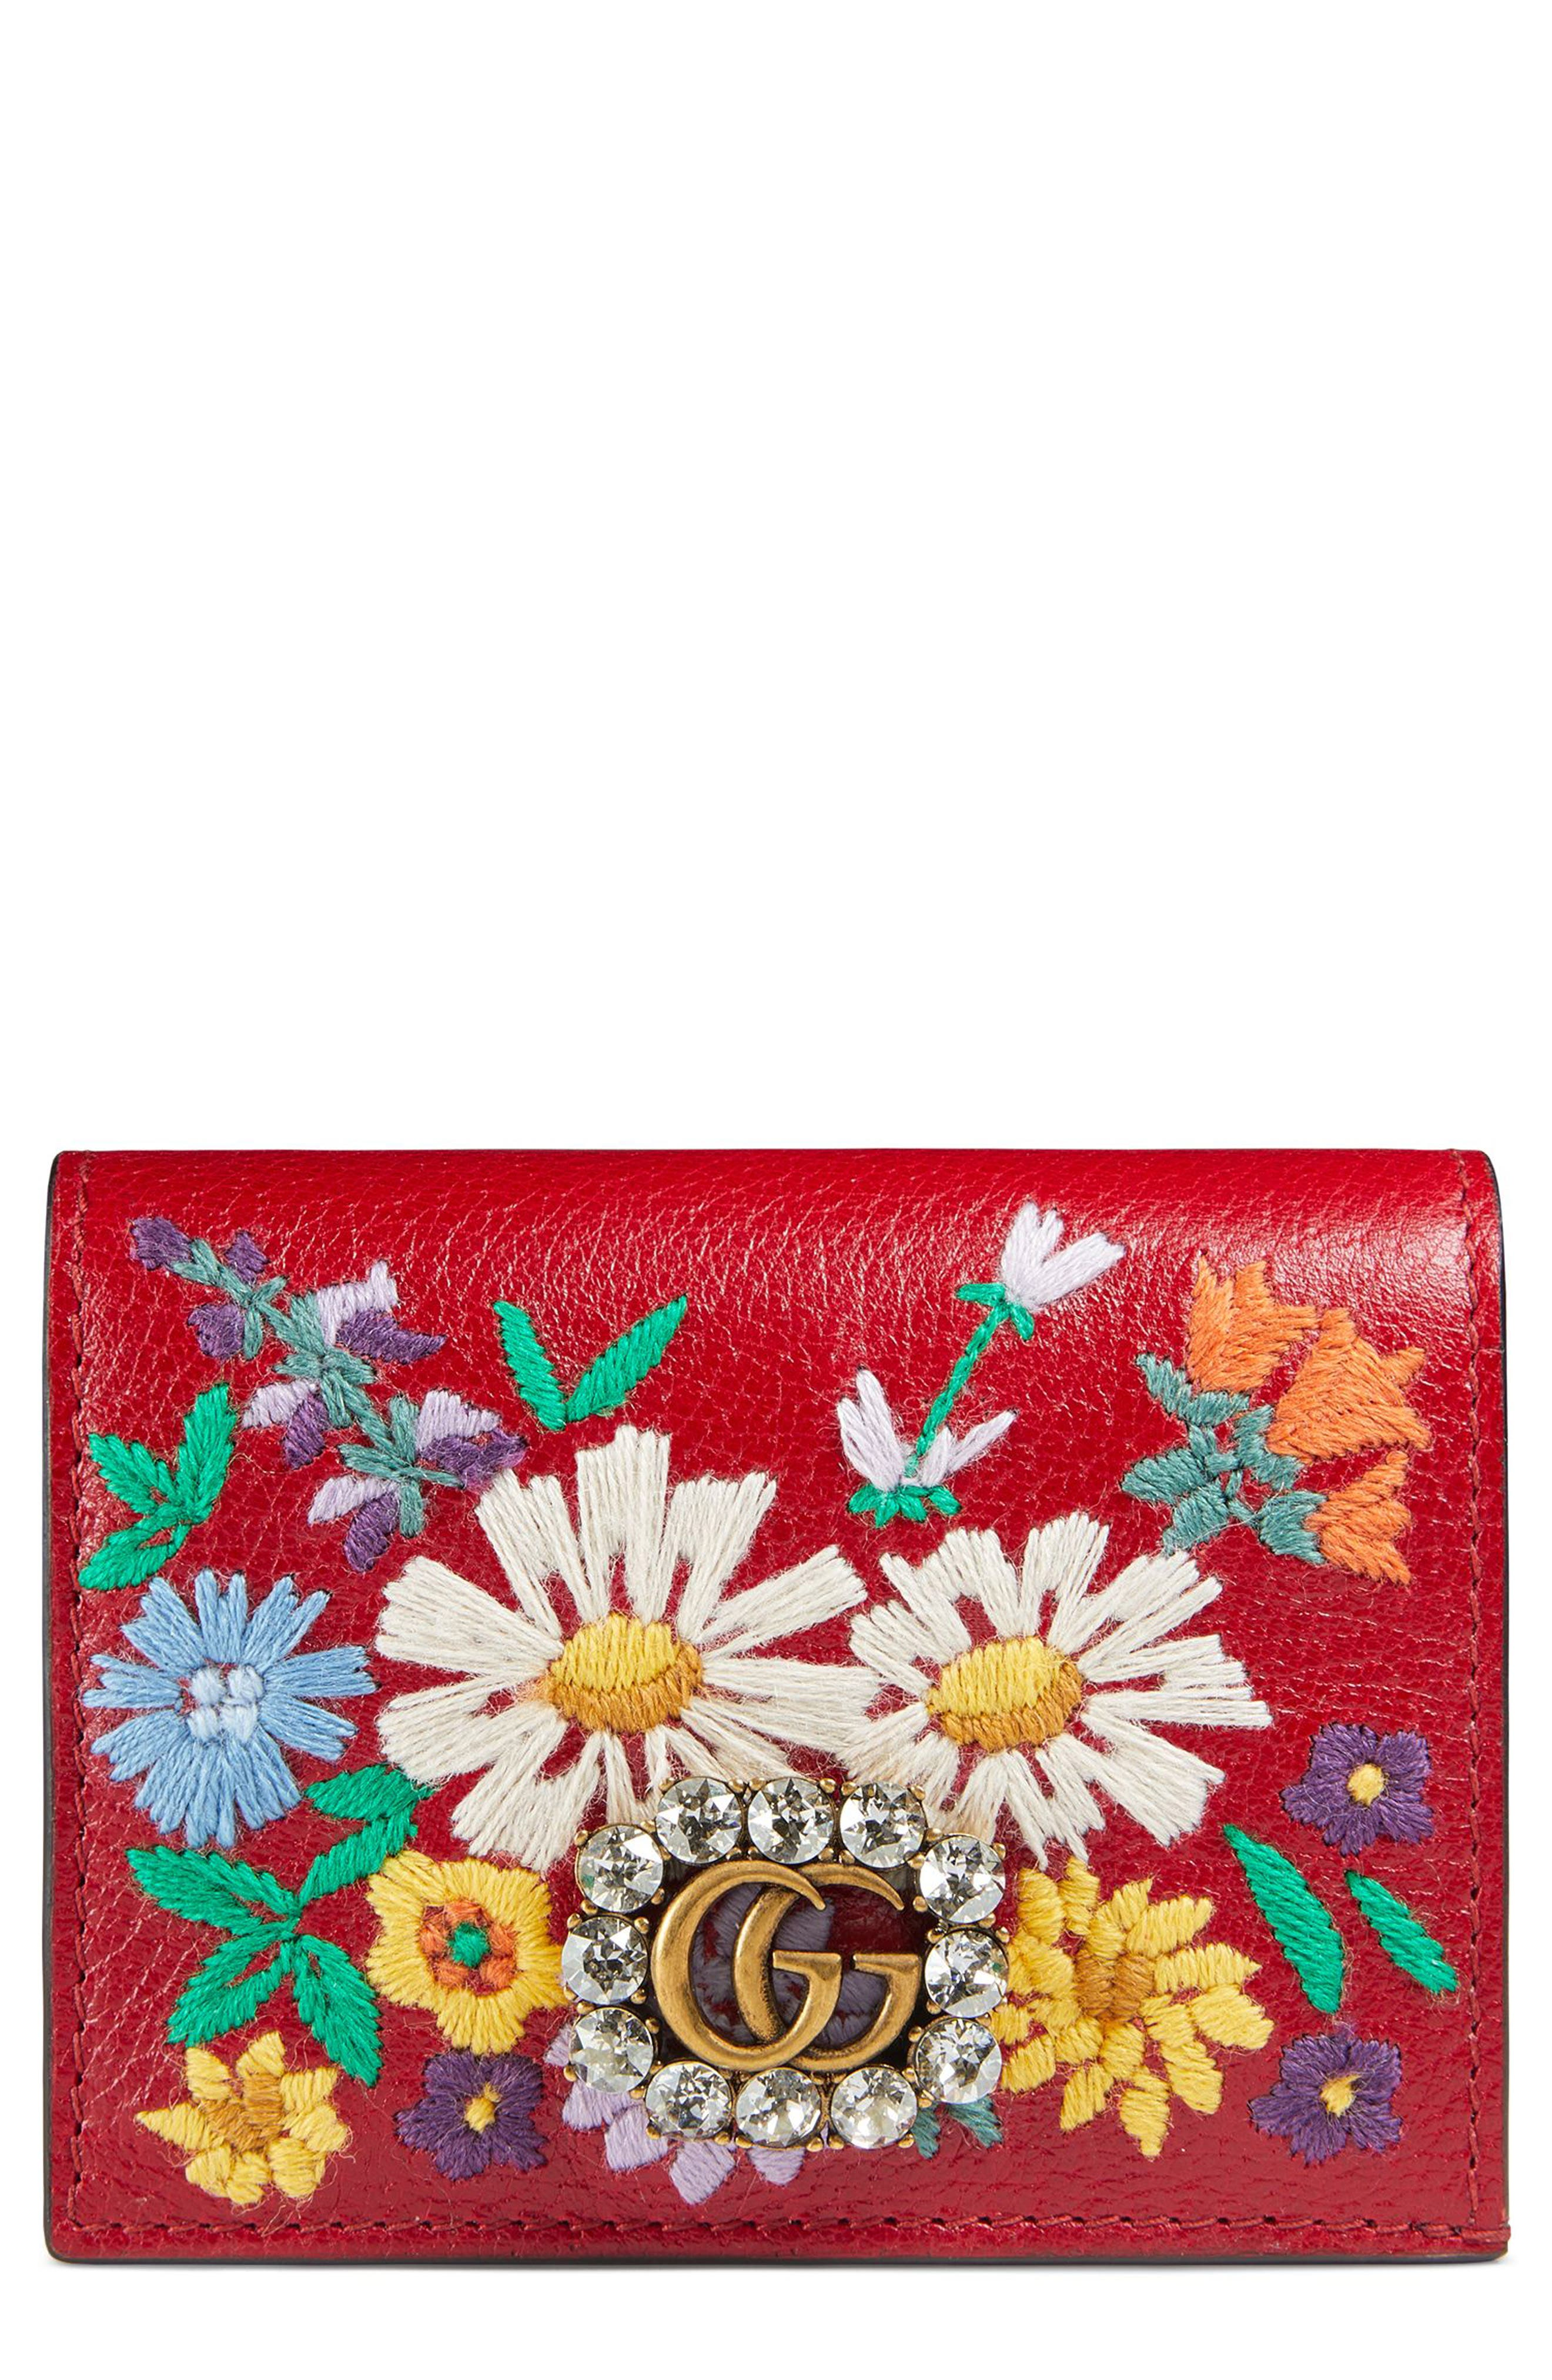 Gucci Embroidered Floral Leather Wallet